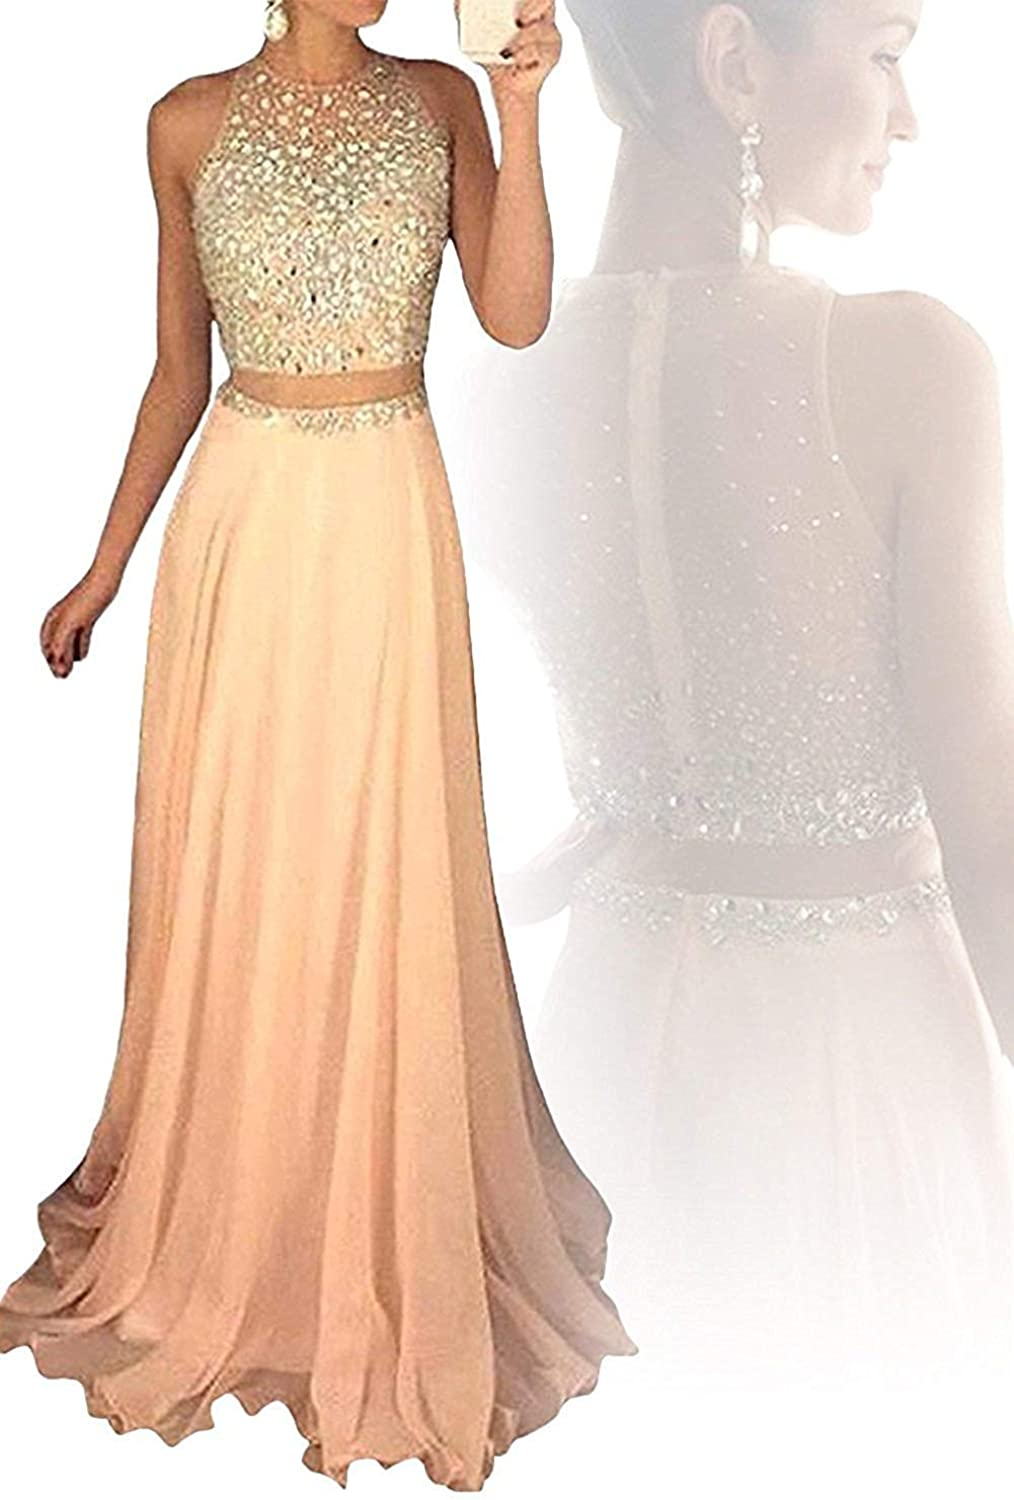 SDRESS Women's 2 Piece Crystal Sequins Prom Dress Two Piece Evening Party Gowns